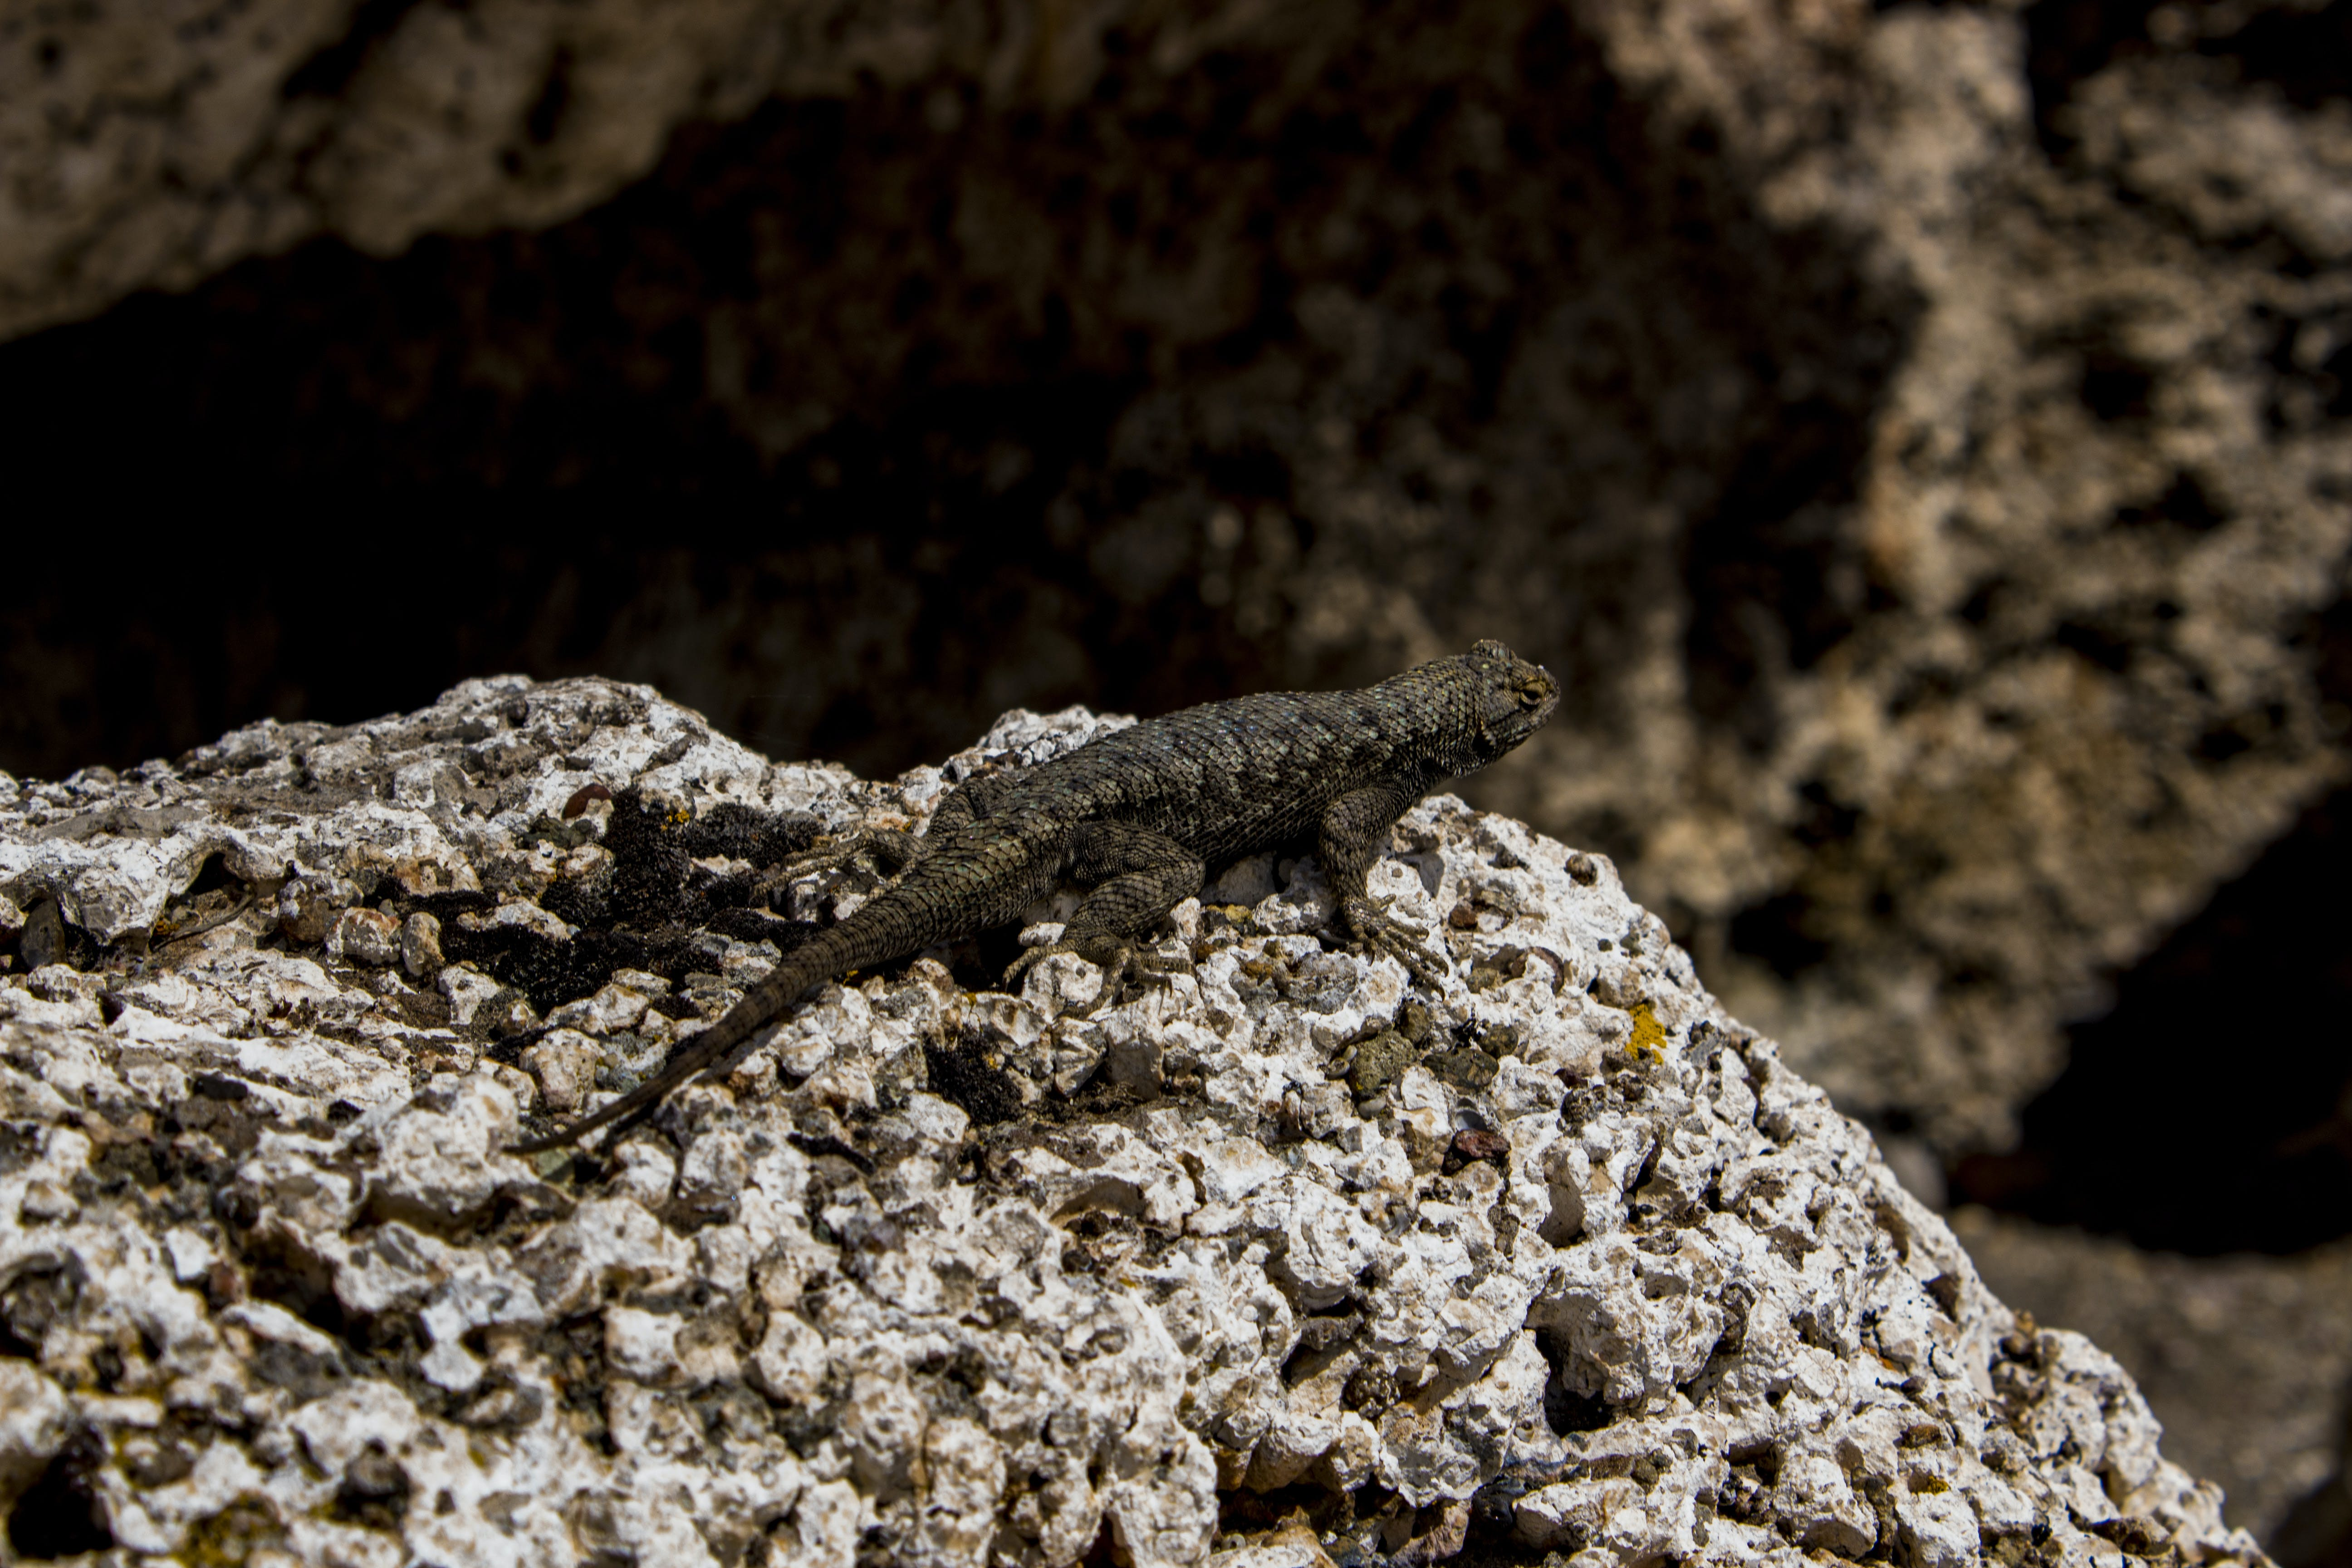 Close-Up Photography of Lizard On Stone